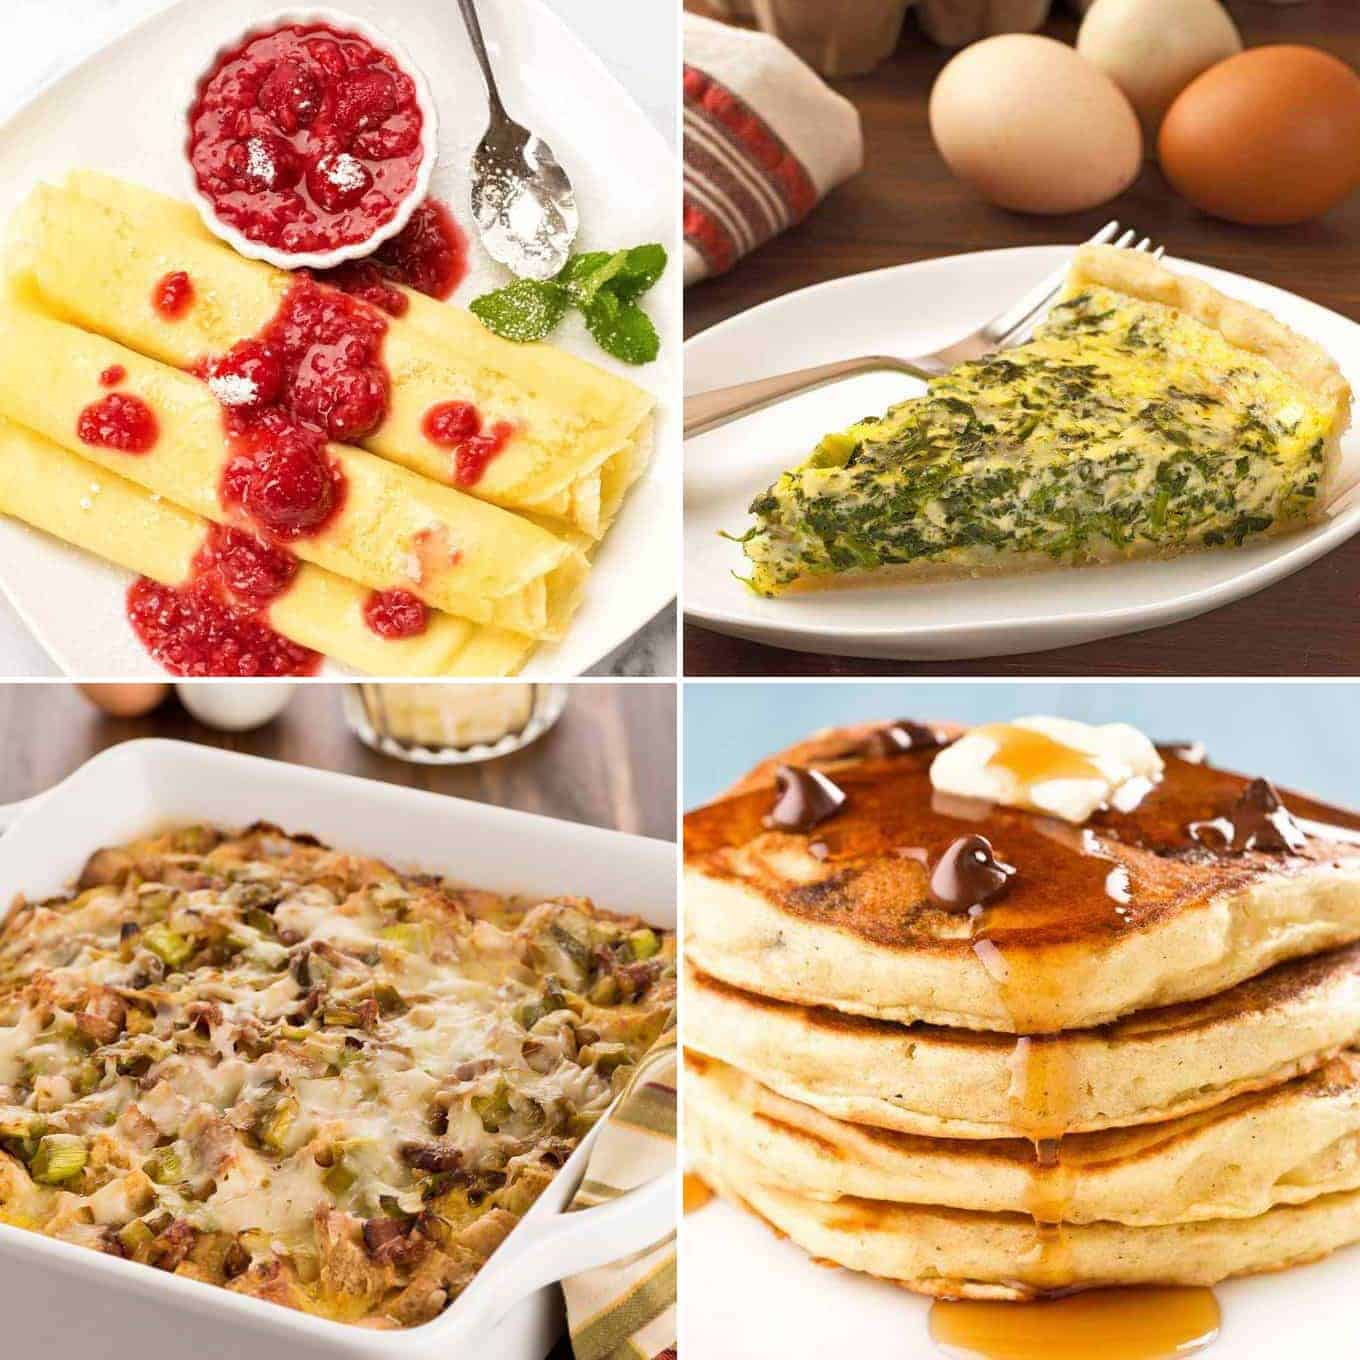 Collage photo including Hungarian crepes with raspberry sauce, spinach quiche, bacon and leek strata, and chocolate chip pancakes